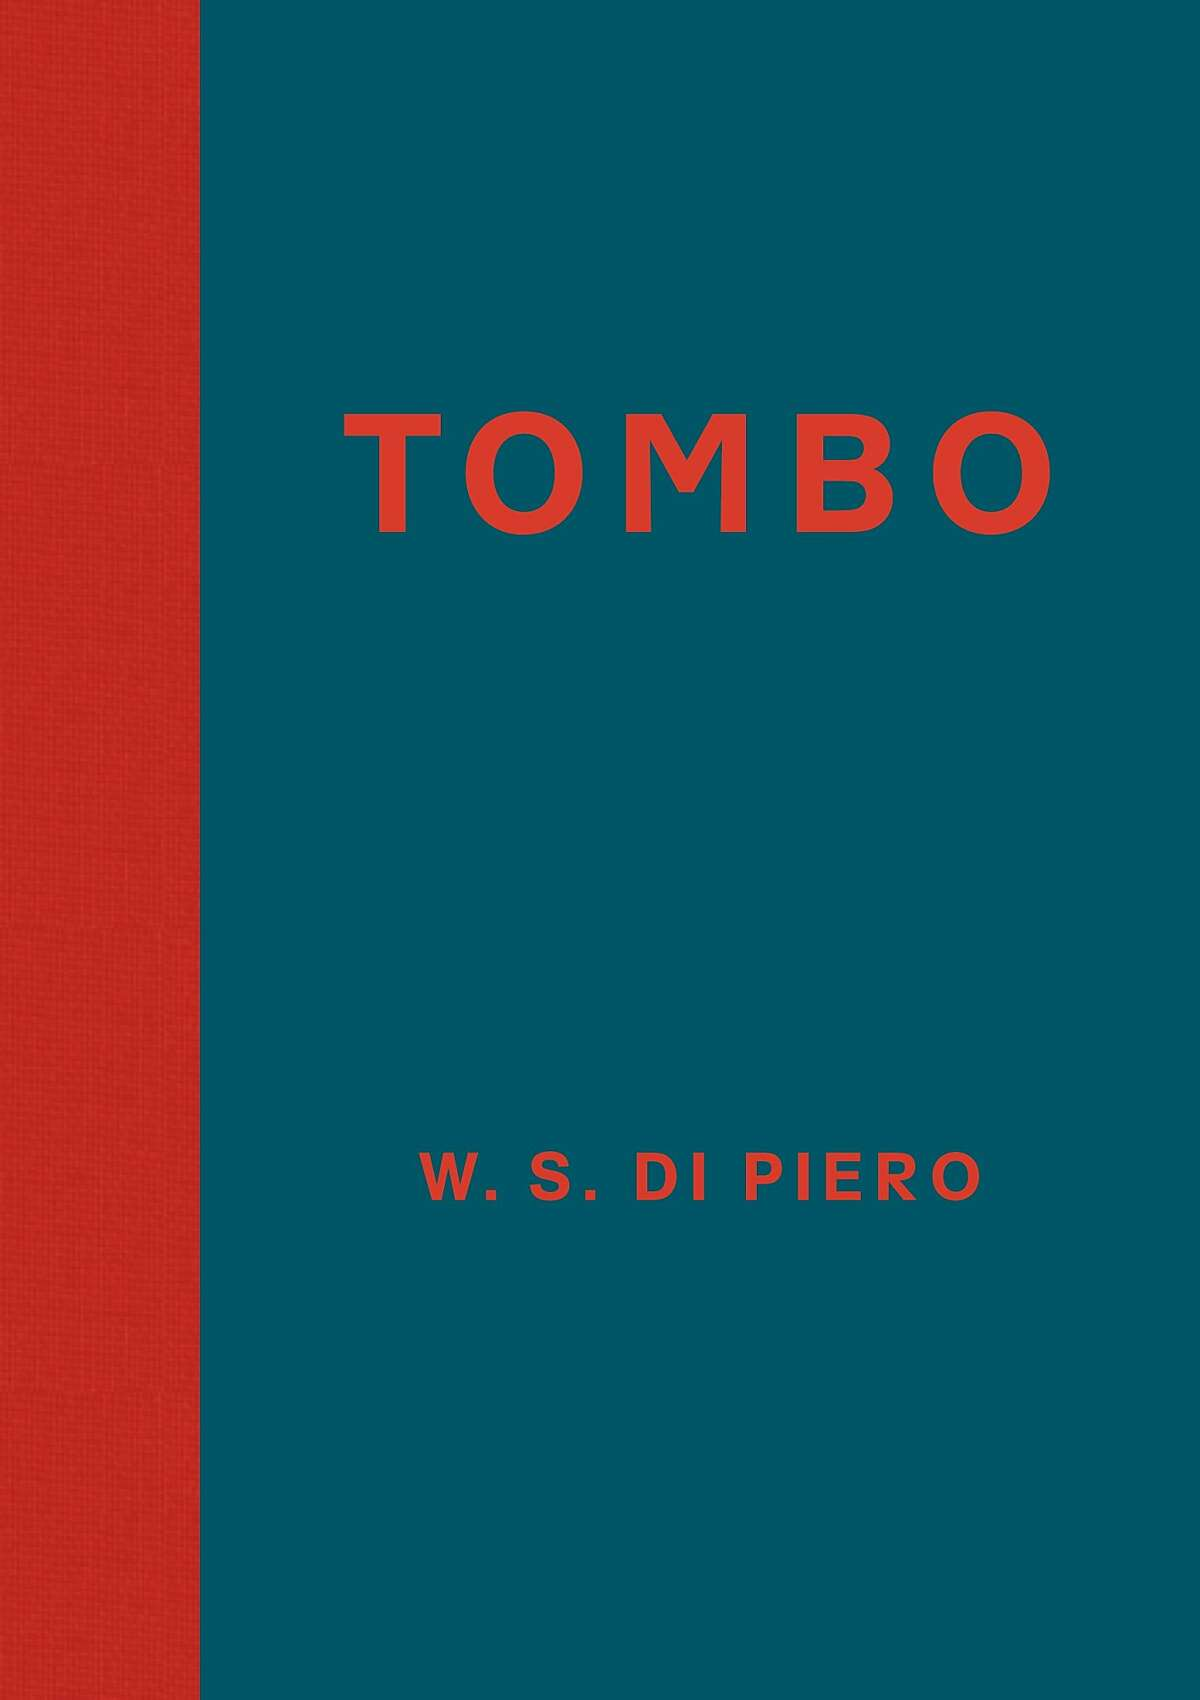 Tombo, by W.S. Di Piero